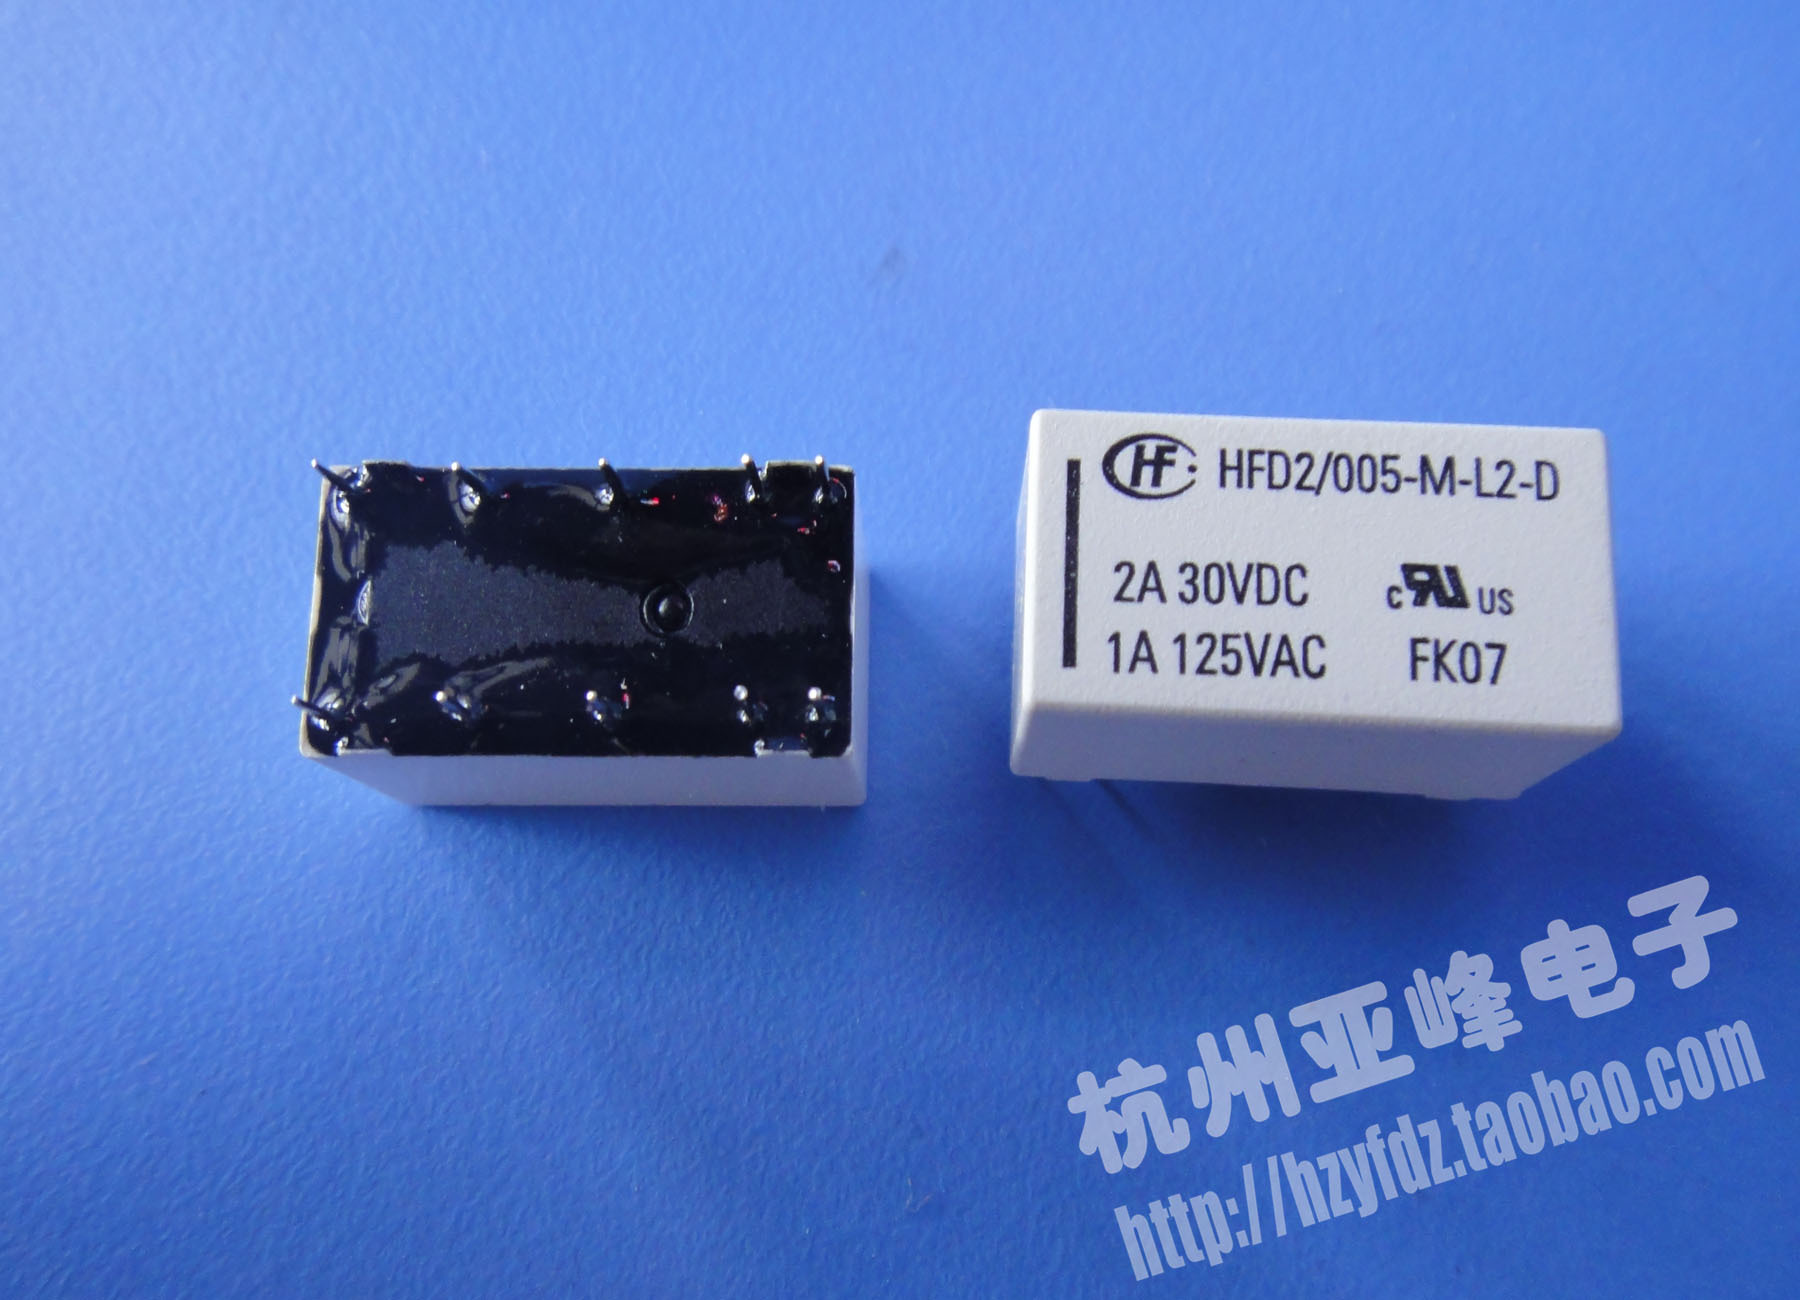 Hfd2 005 M L2 D 1a125vac Dual Coil Latching Relay In Relays From Home Improvement On Alibaba Group